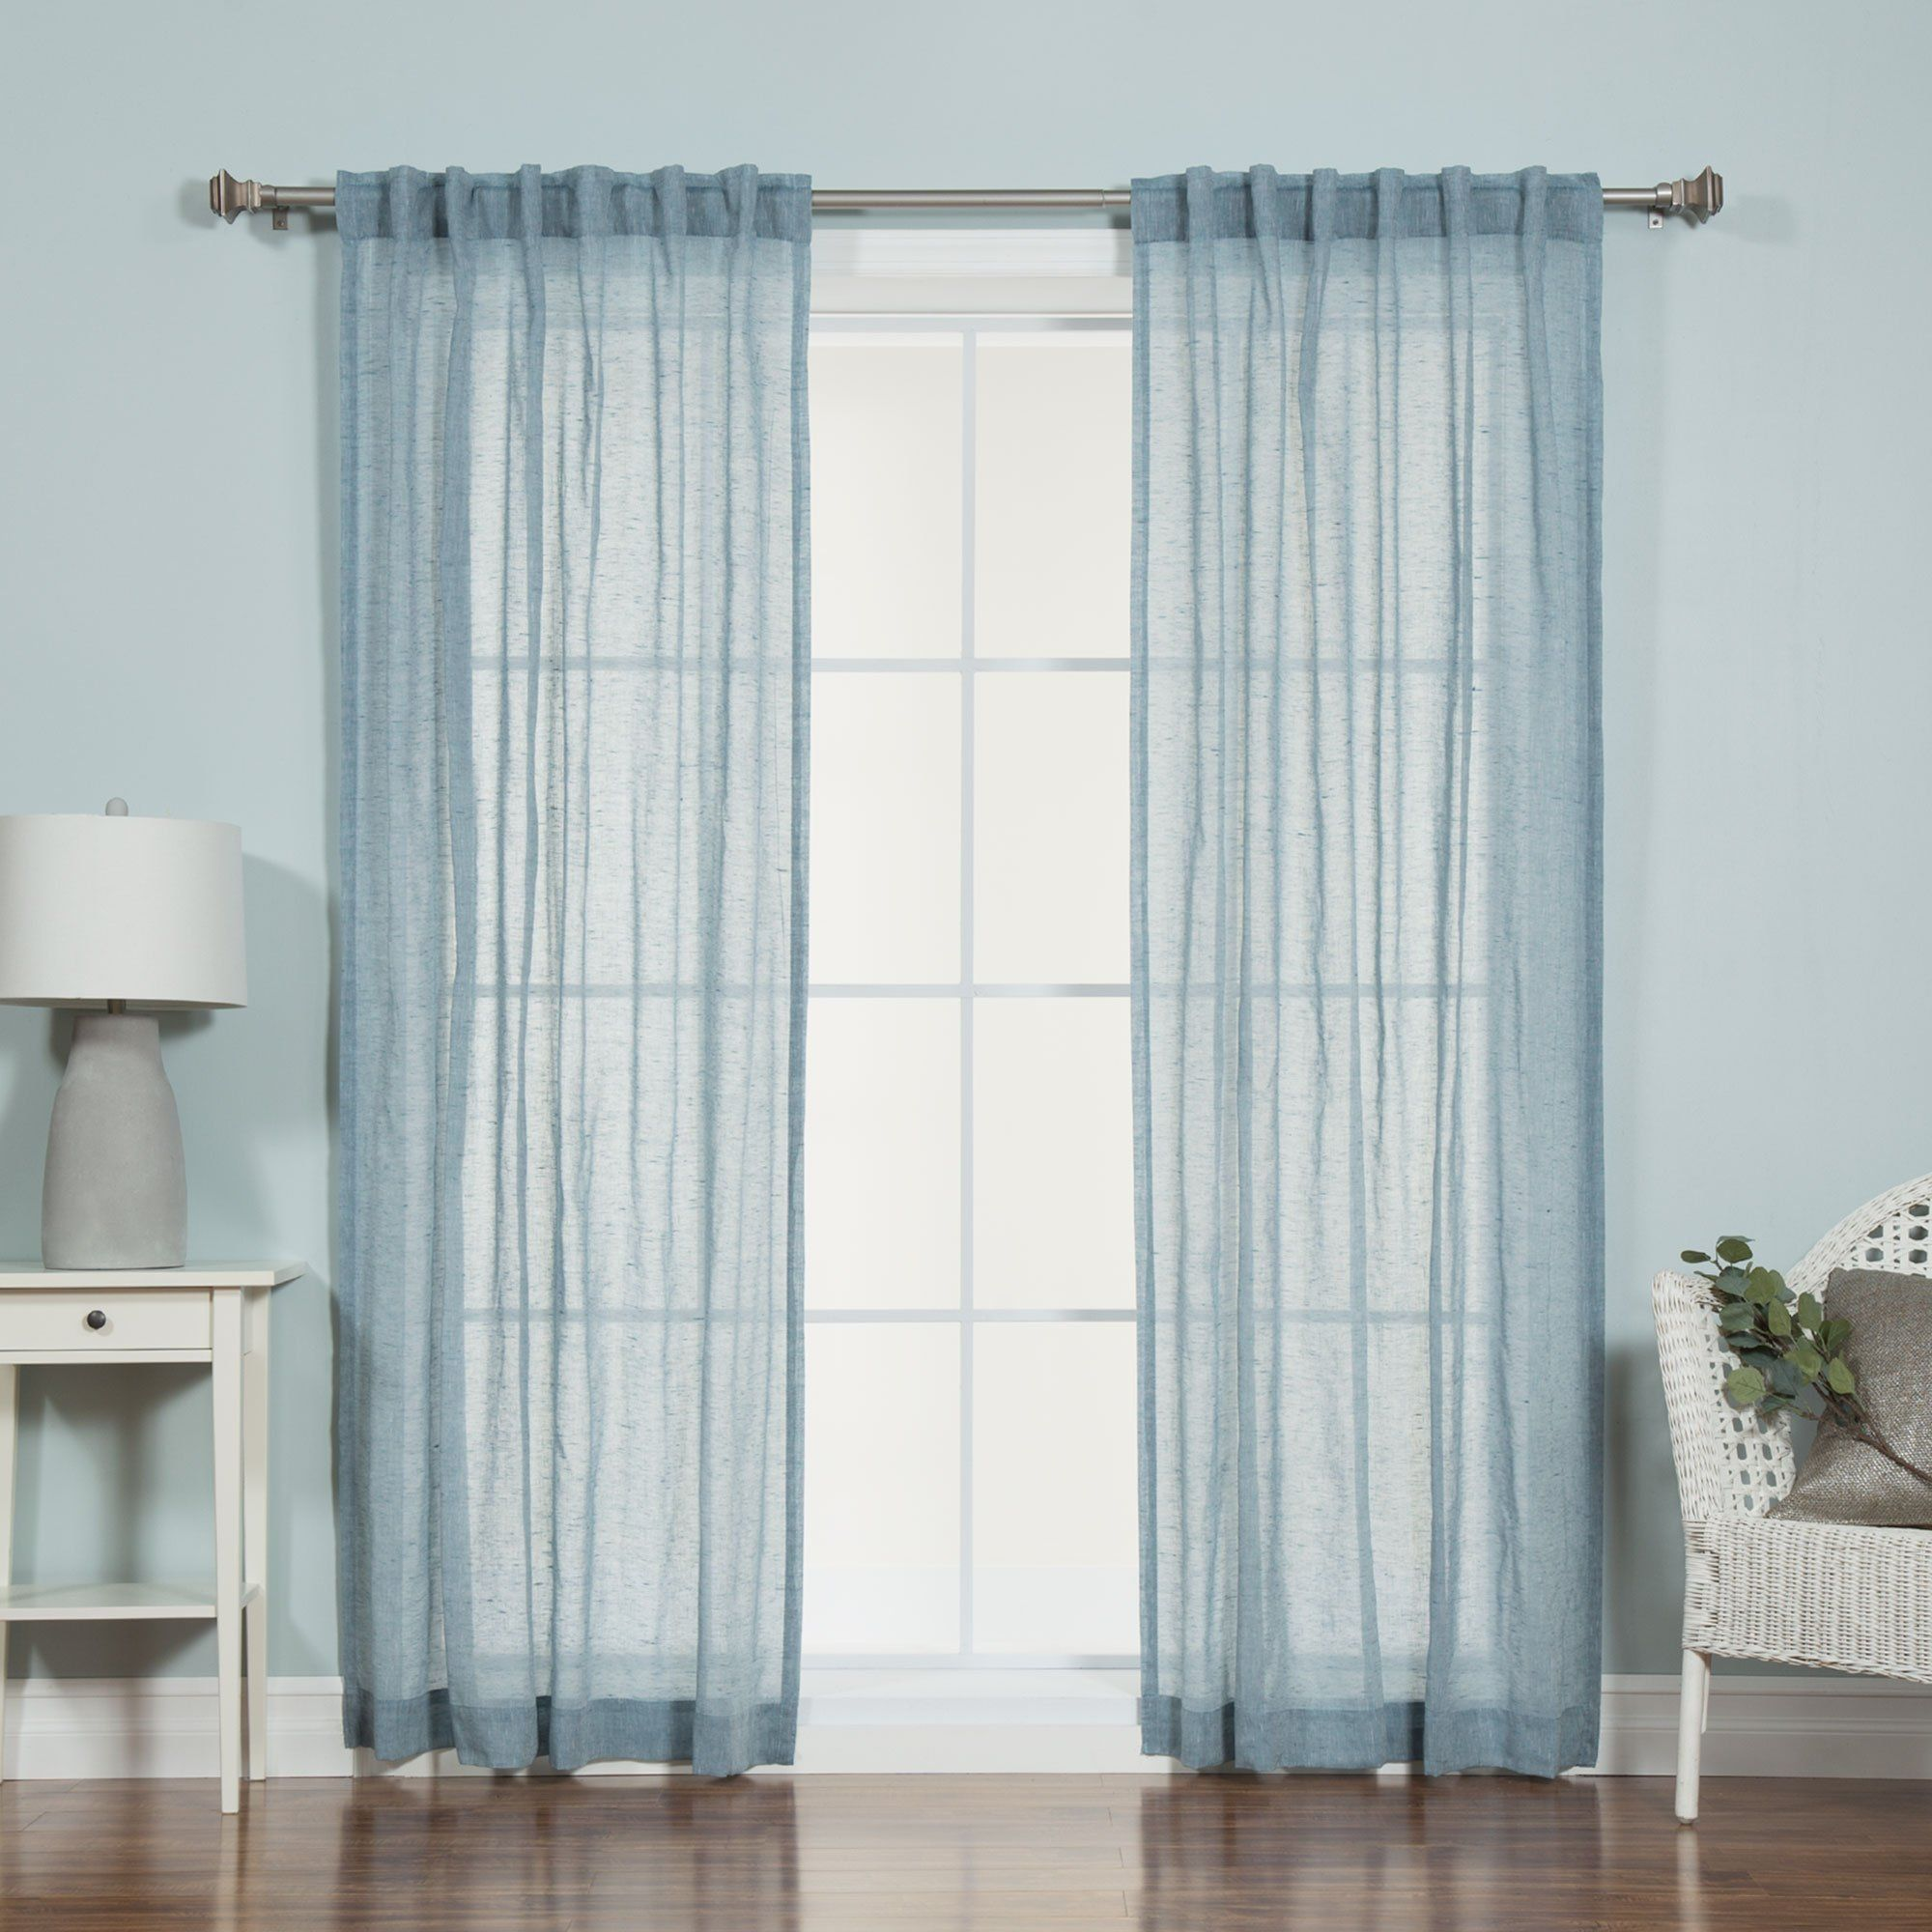 Best home fashion faux pippin linen sheer curtain back tab rod